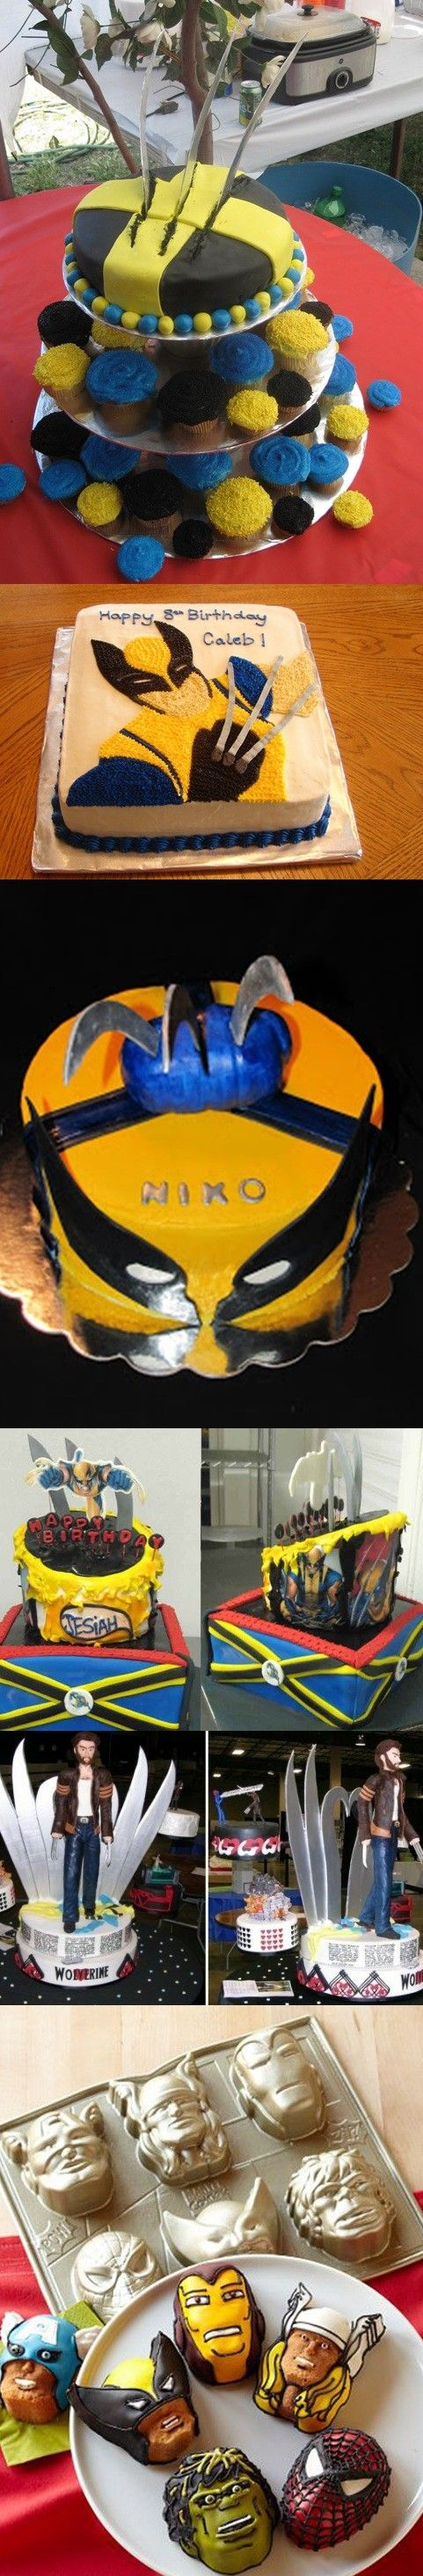 The Wolverine Cake - The Wolverine....I would love this for my four boys